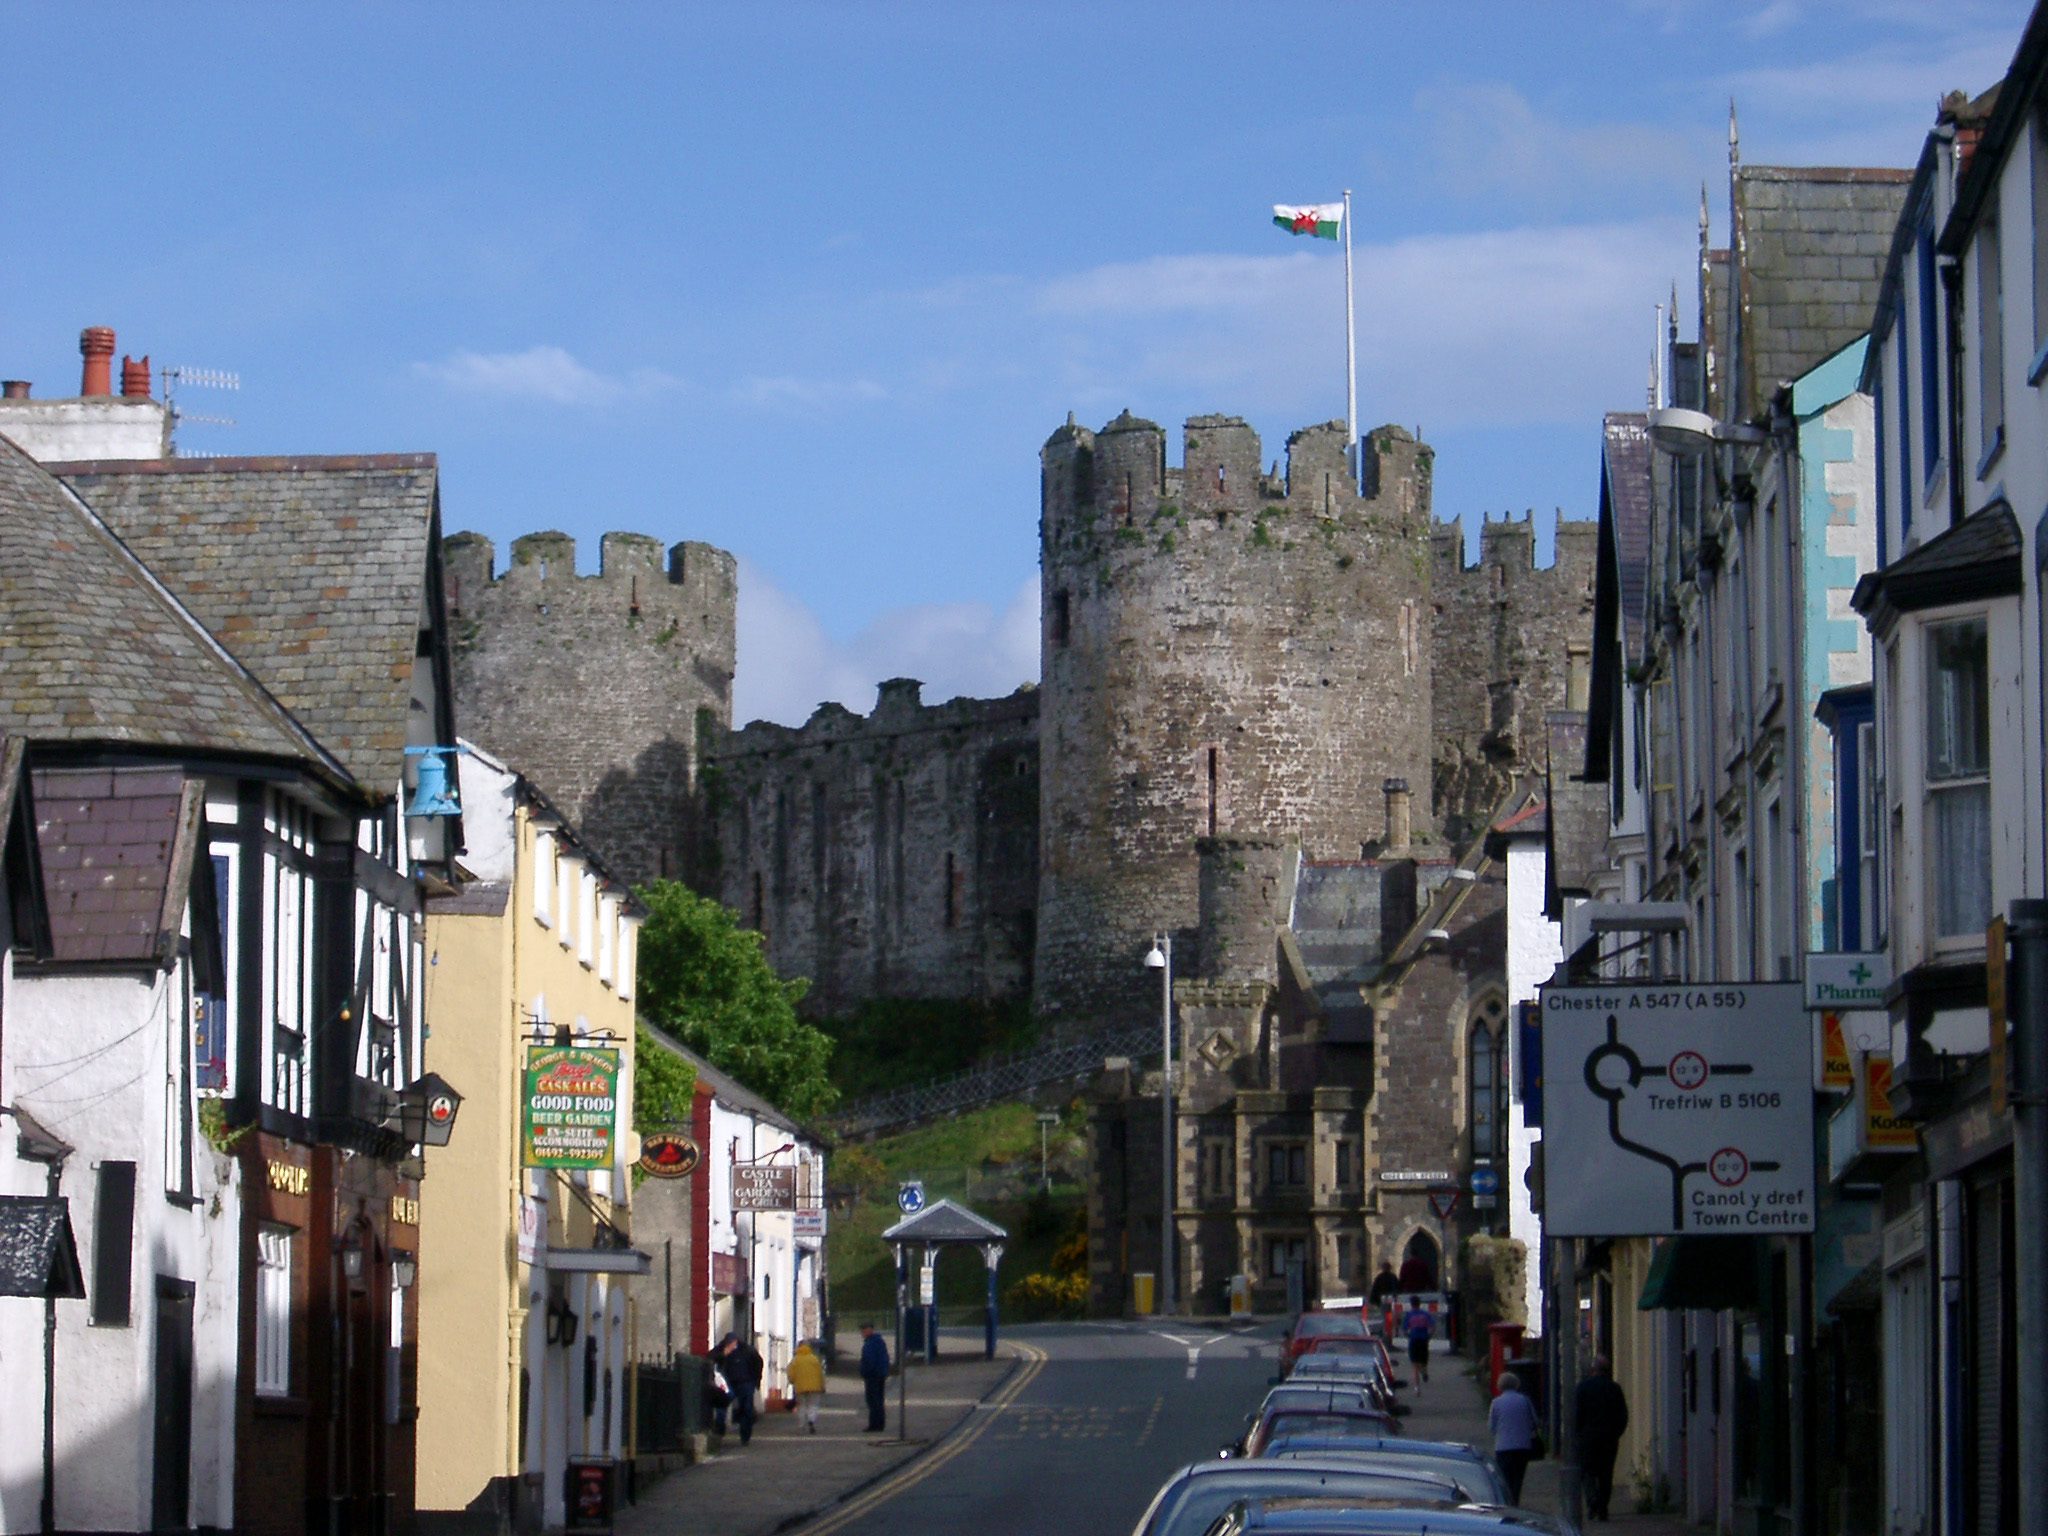 Street scene in Conway, Wales with a road sign, quaint historical buildings and the towers of the medieval stone castle in the background